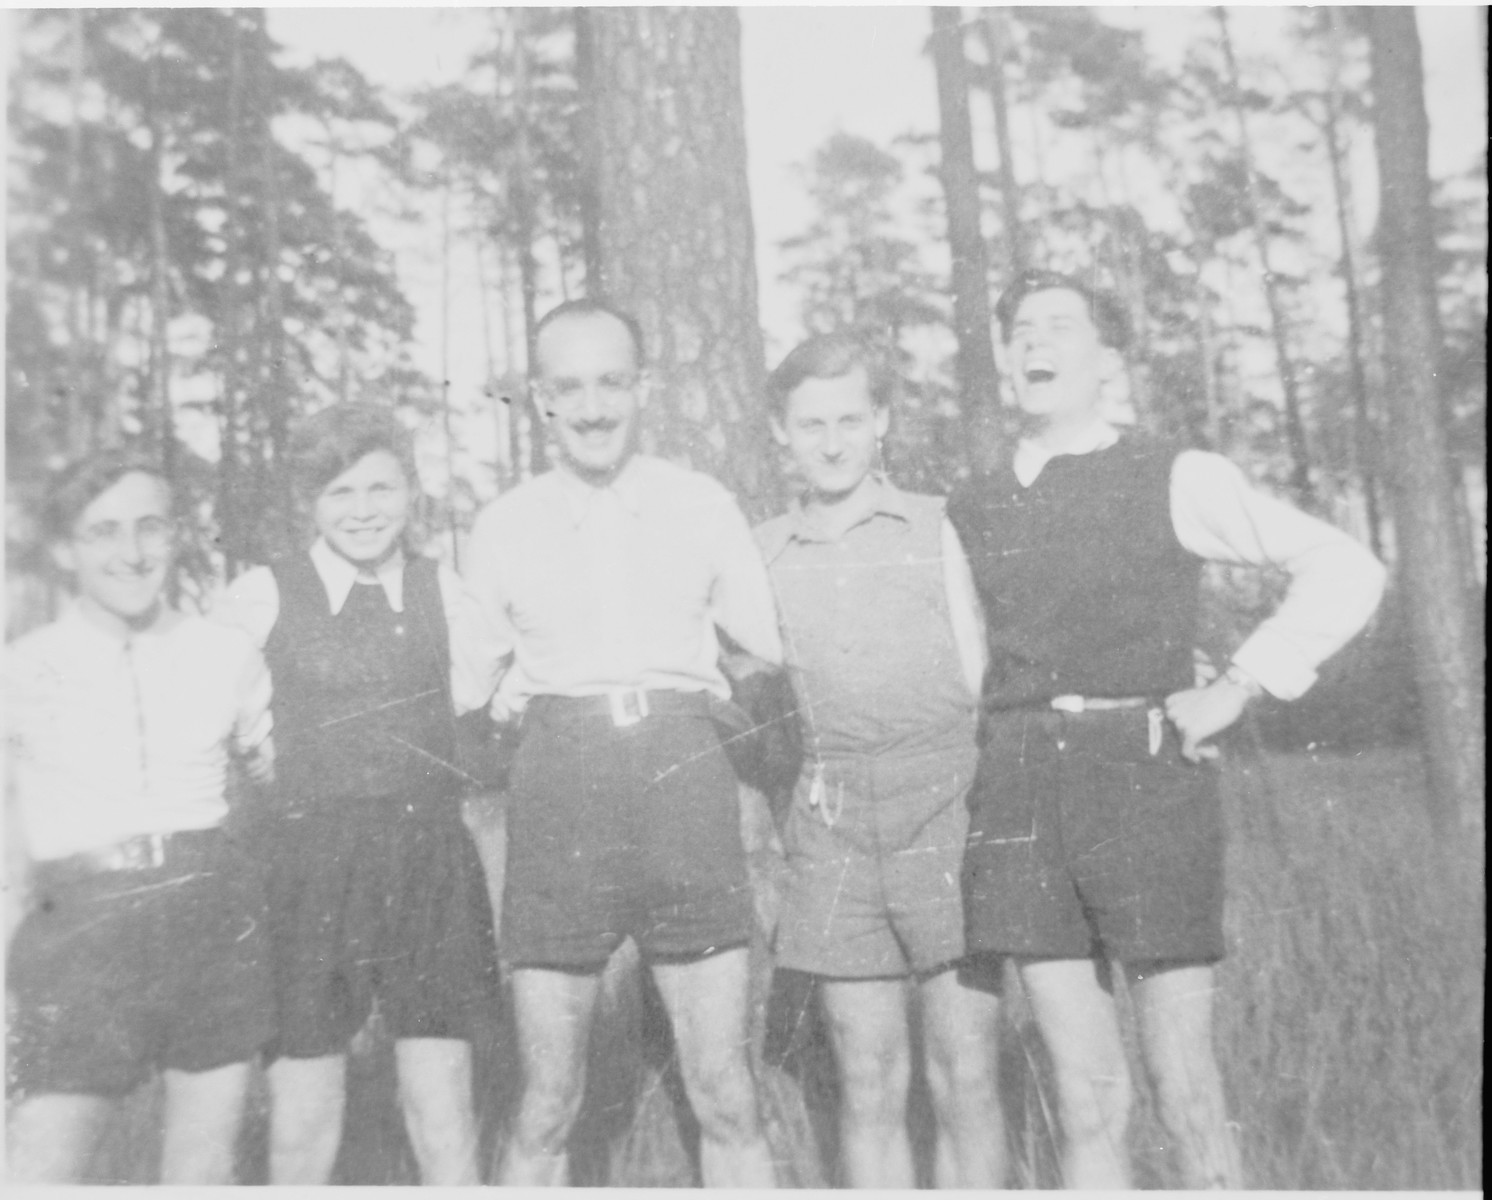 Members of the Chug Halutzi underground Zionist youth group during a hike in the Grunewald Forest.    Pictured from left to right are: Gad Beck, David Billard, Jizchak Schwersenz, Zwi Abrahamssohn, and Leopold (Poldi) Chones.